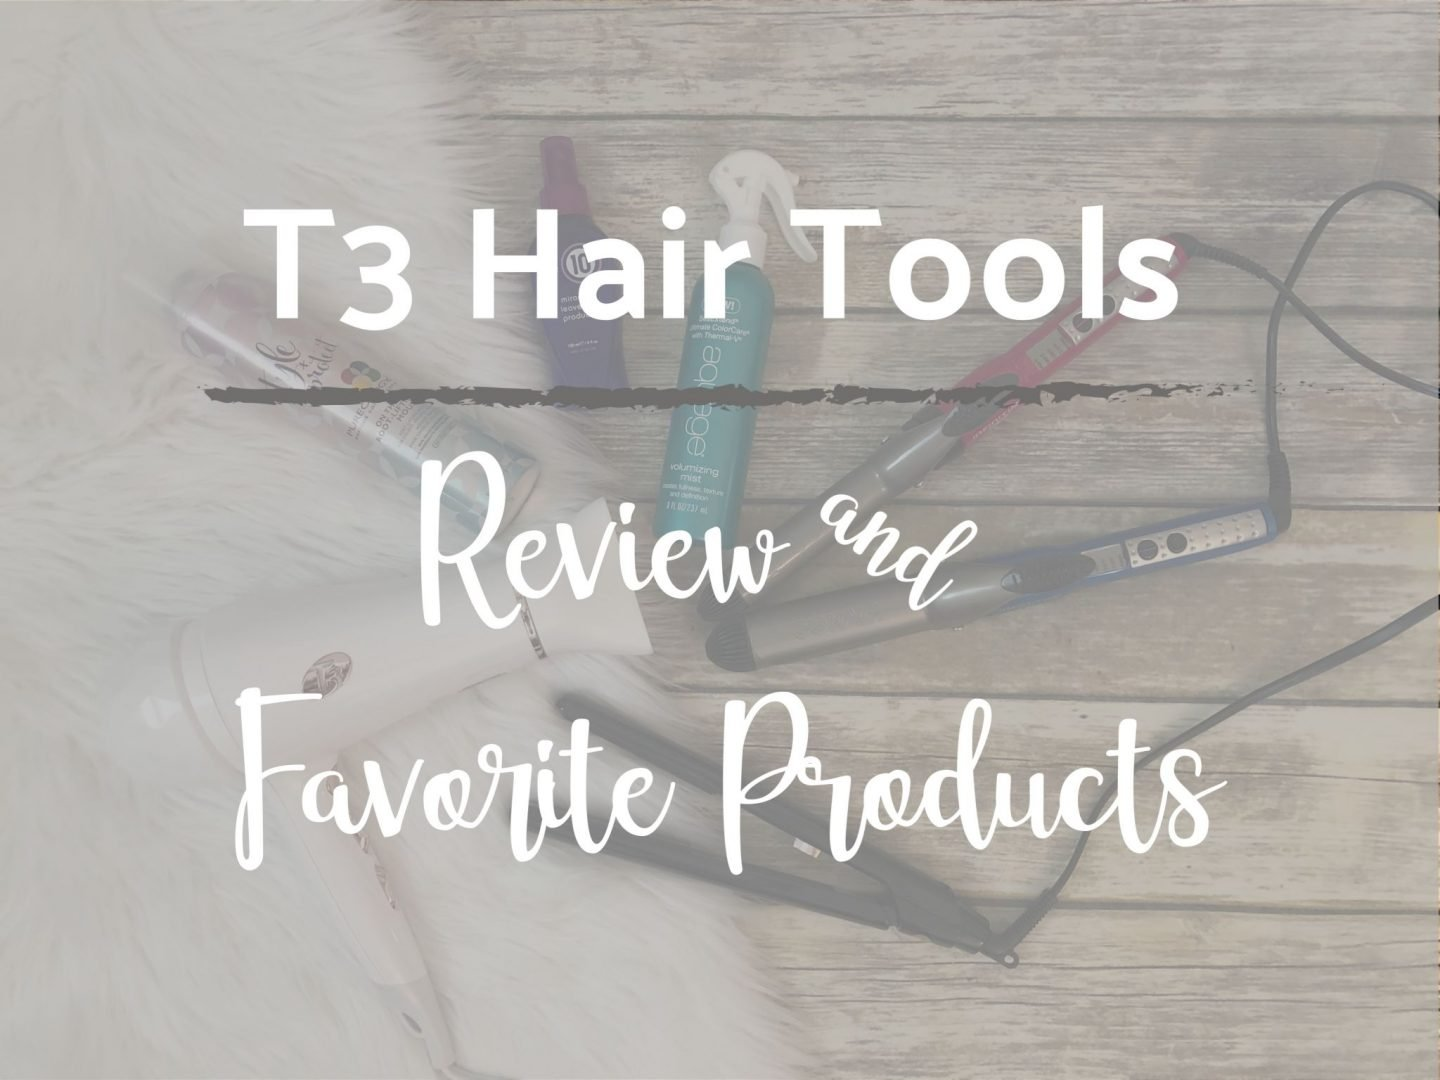 Friday Favorites #143 – T3 Hair Tools Review & Products